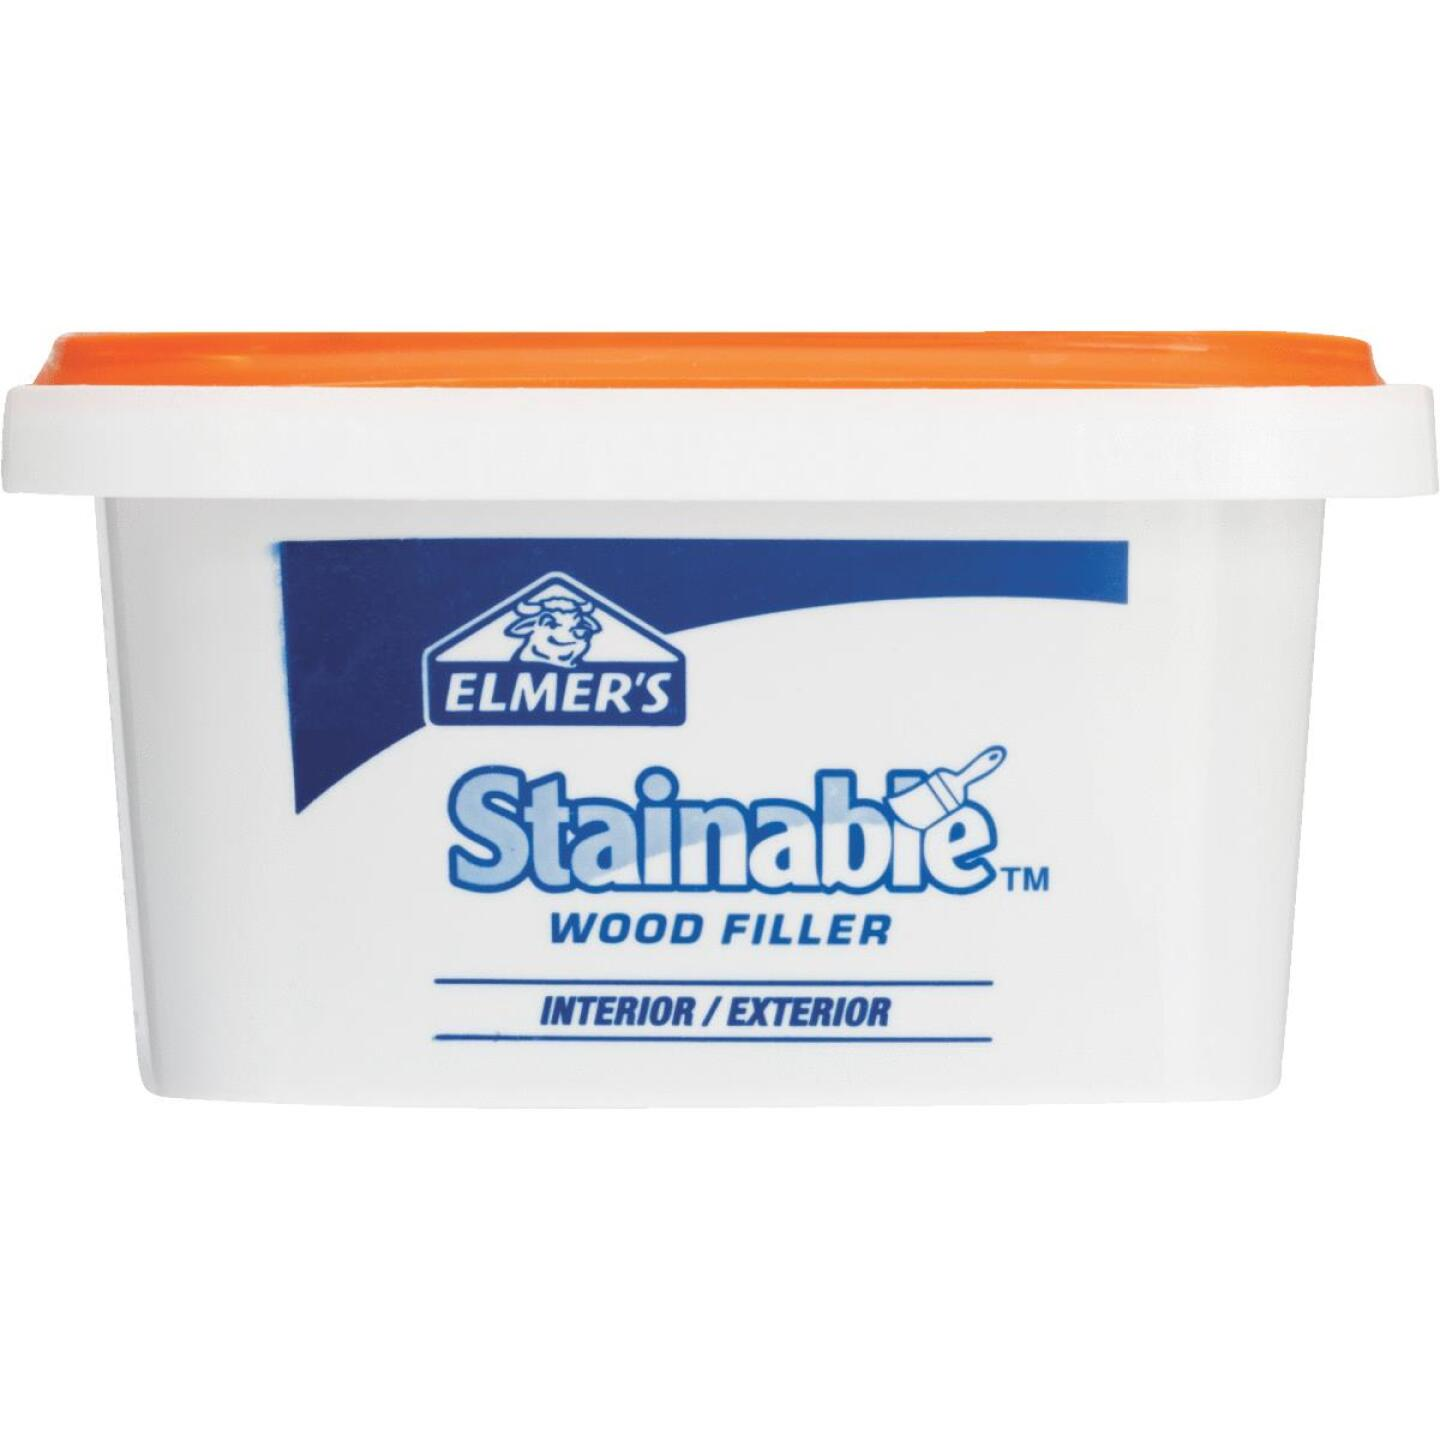 Elmer's Stainable Light Tan 32 Oz. Wood Filler Image 3